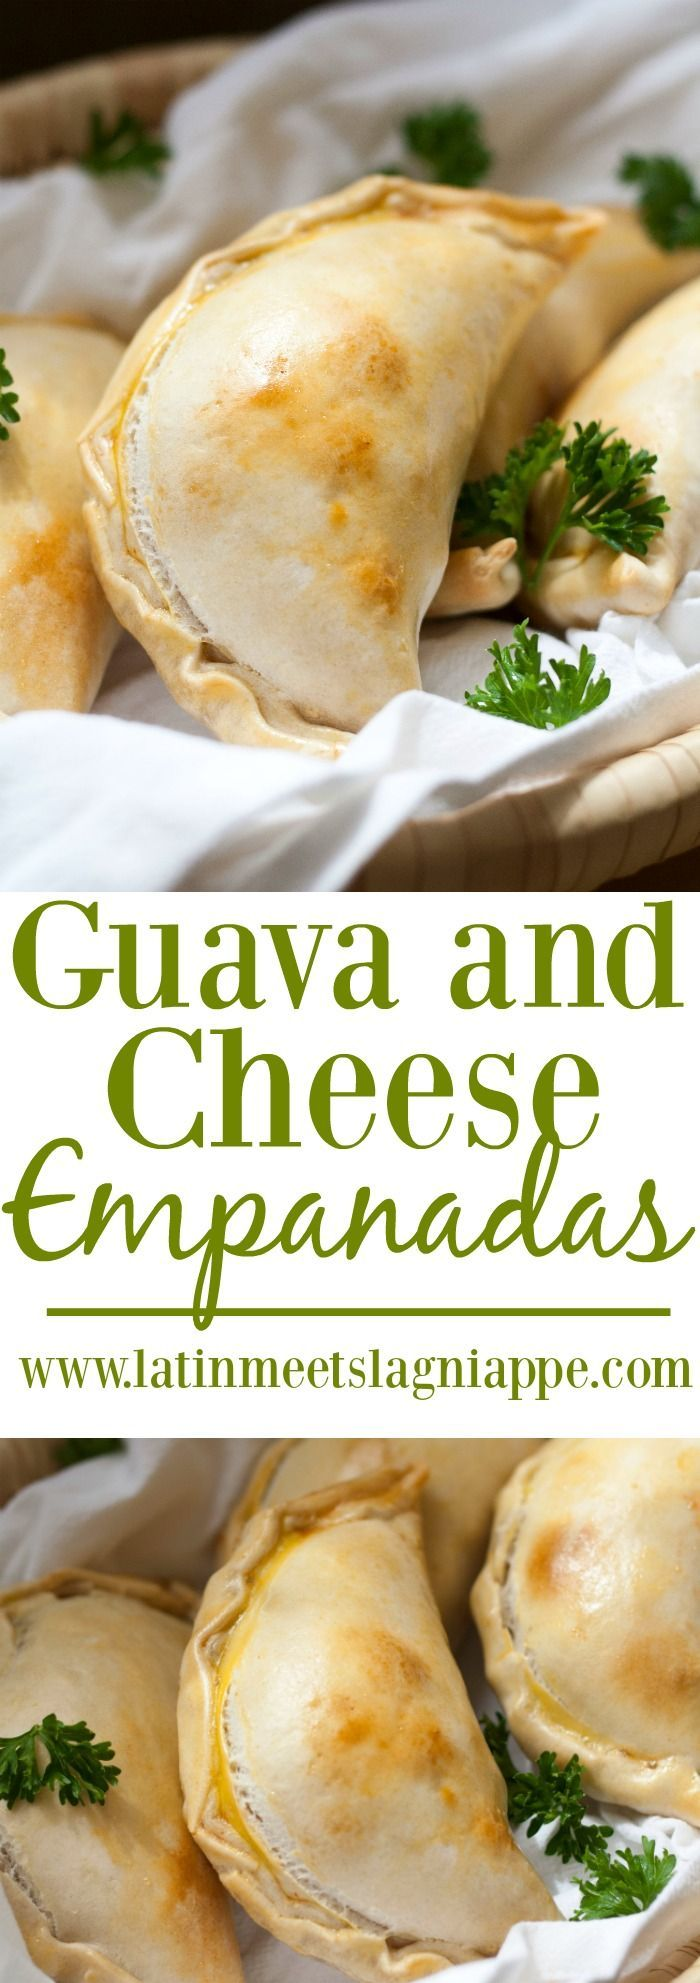 These Guava and Cheese Empanadas are such a tasty snack!                                                                                                                                                     More